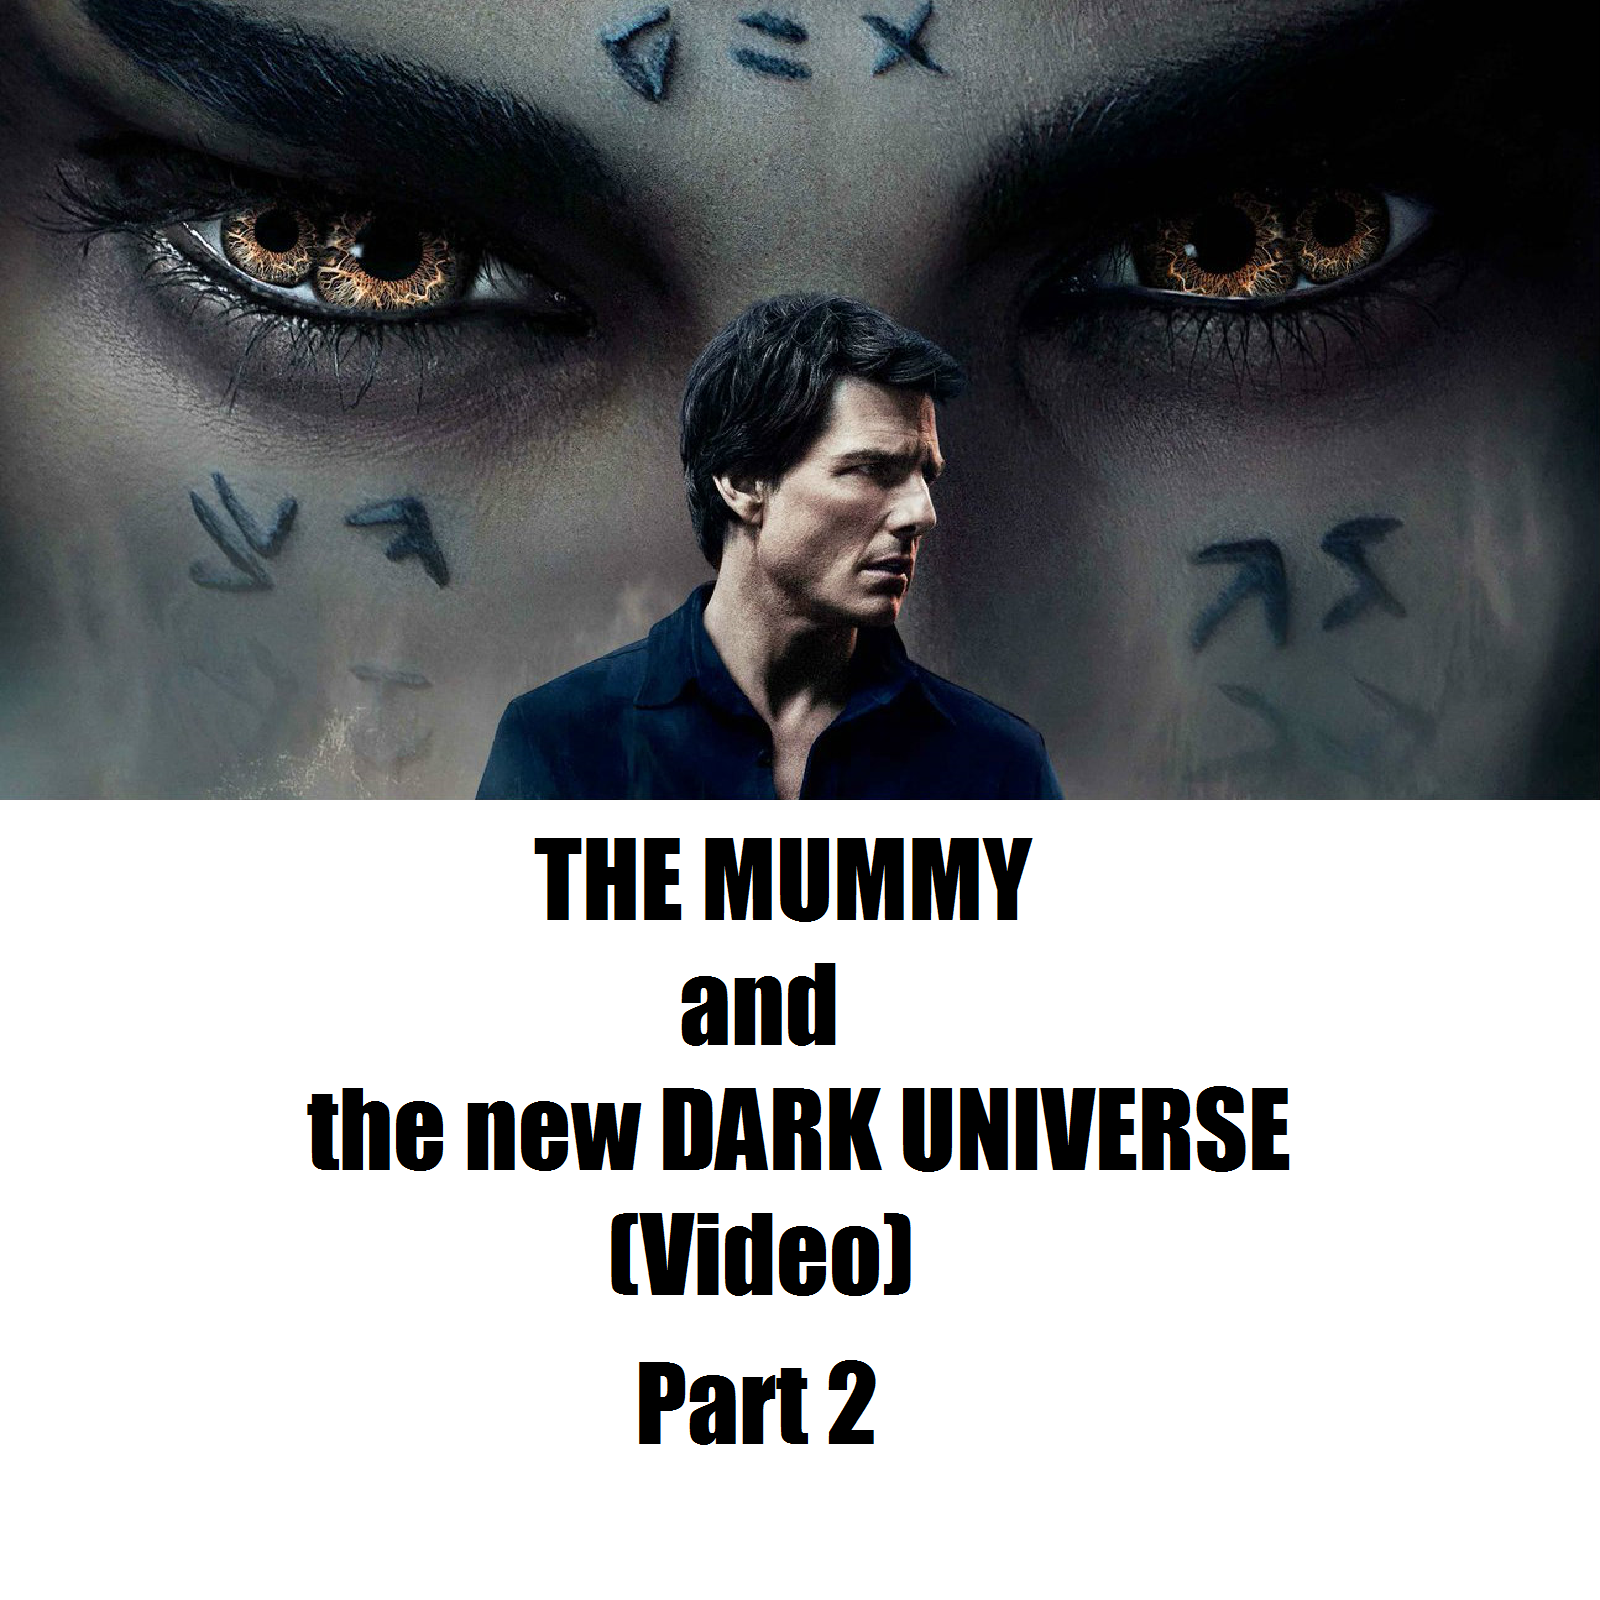 Artwork for VIDEO - Is THE MUMMY what you thought it would be? (Part 2 of 4)